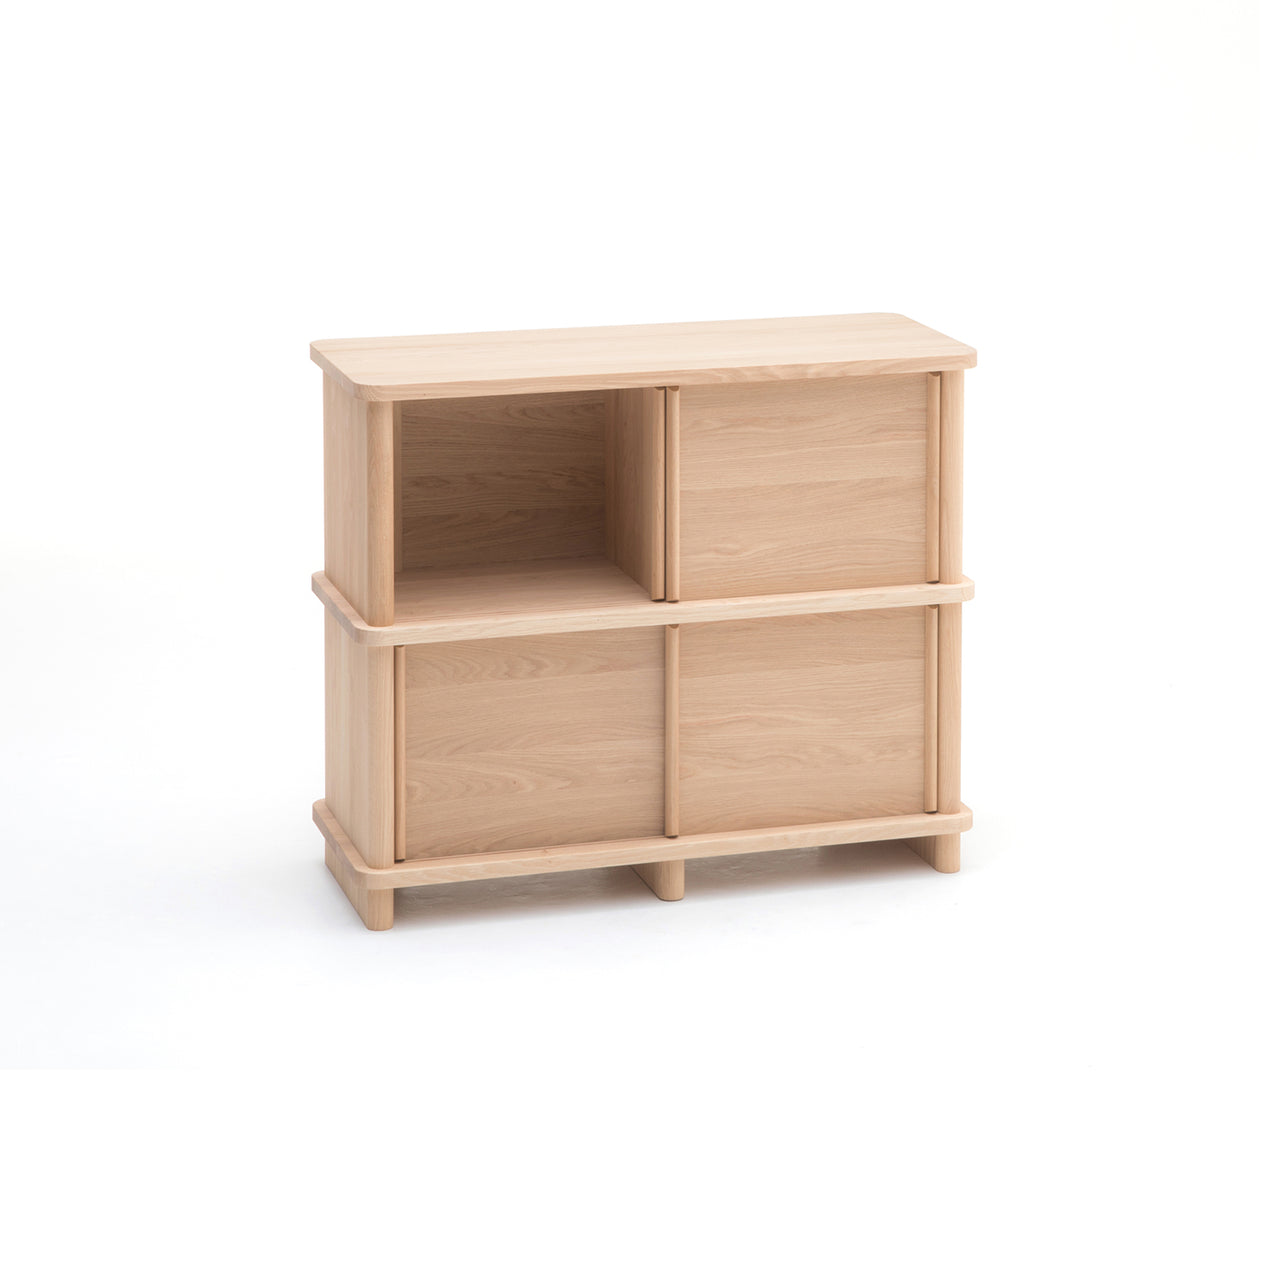 Prop Sideboard: Small + Pure Oak